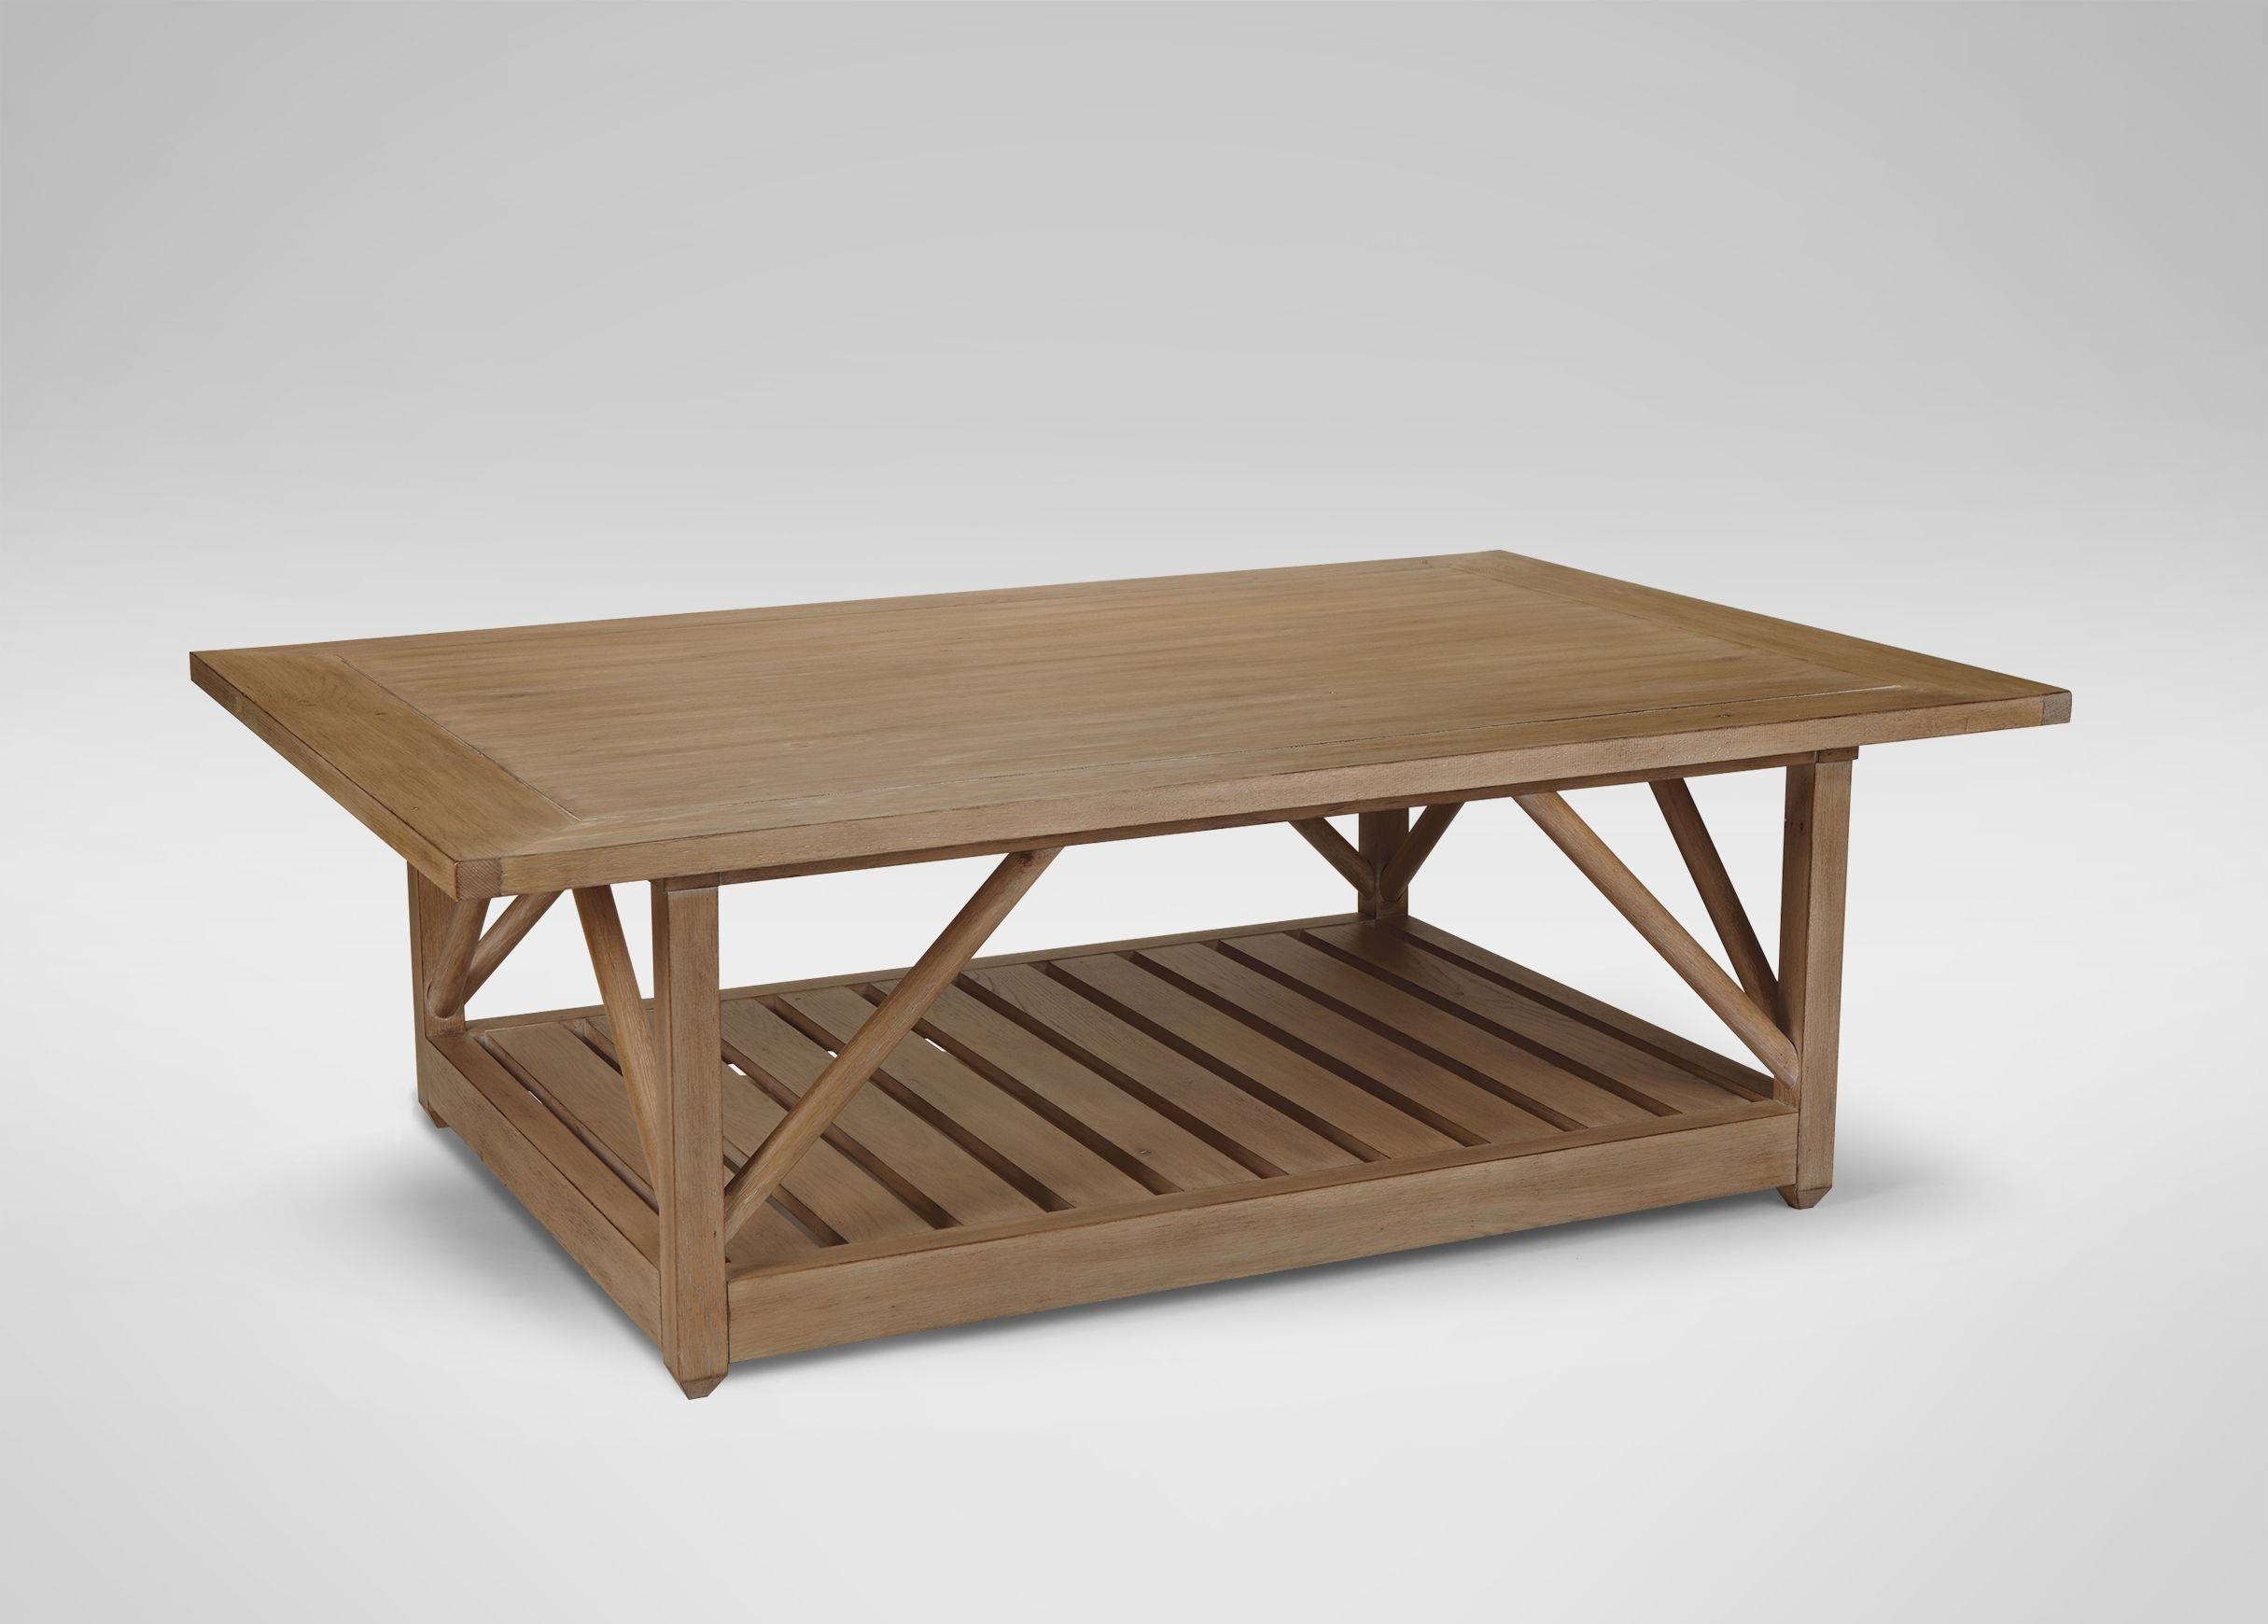 Picture Of Artistic Reclaimed Wood Coffee Tables – Reclaimed Wood throughout Large Square Coffee Tables (Image 28 of 30)